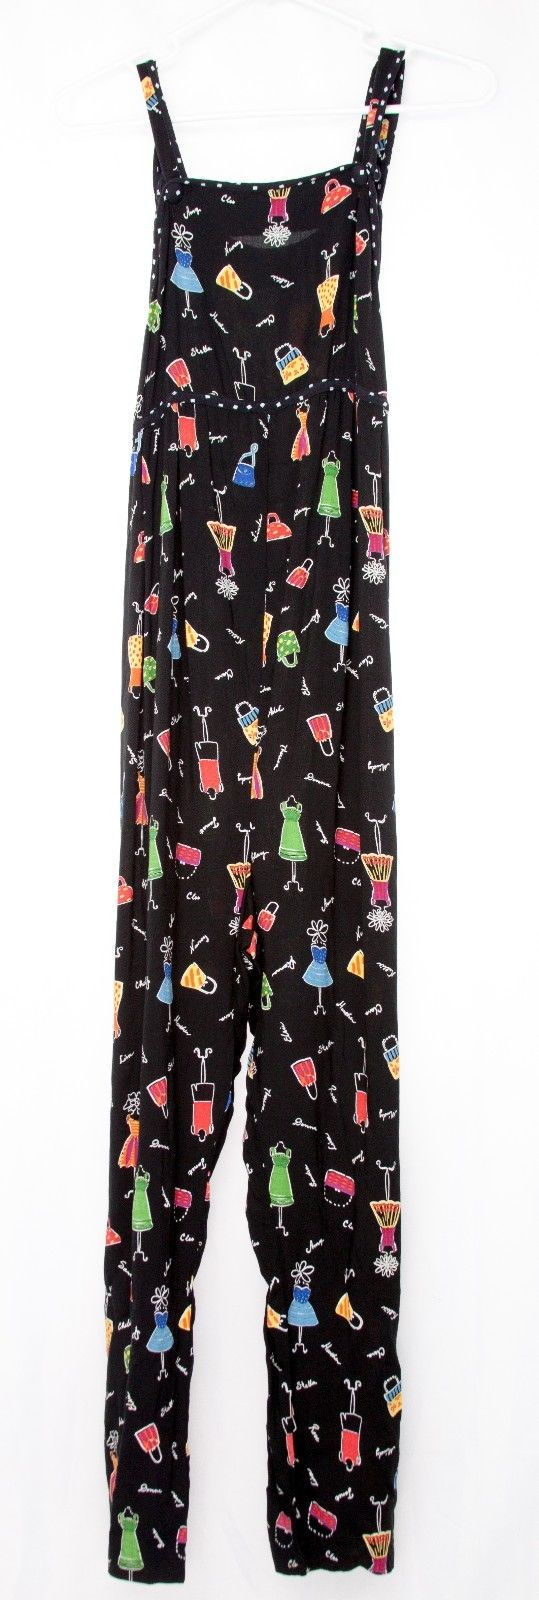 DUO MATERNITY Rayon Colorful Print Empire Waist Black Ankle Jumpsuit Sz S x 25